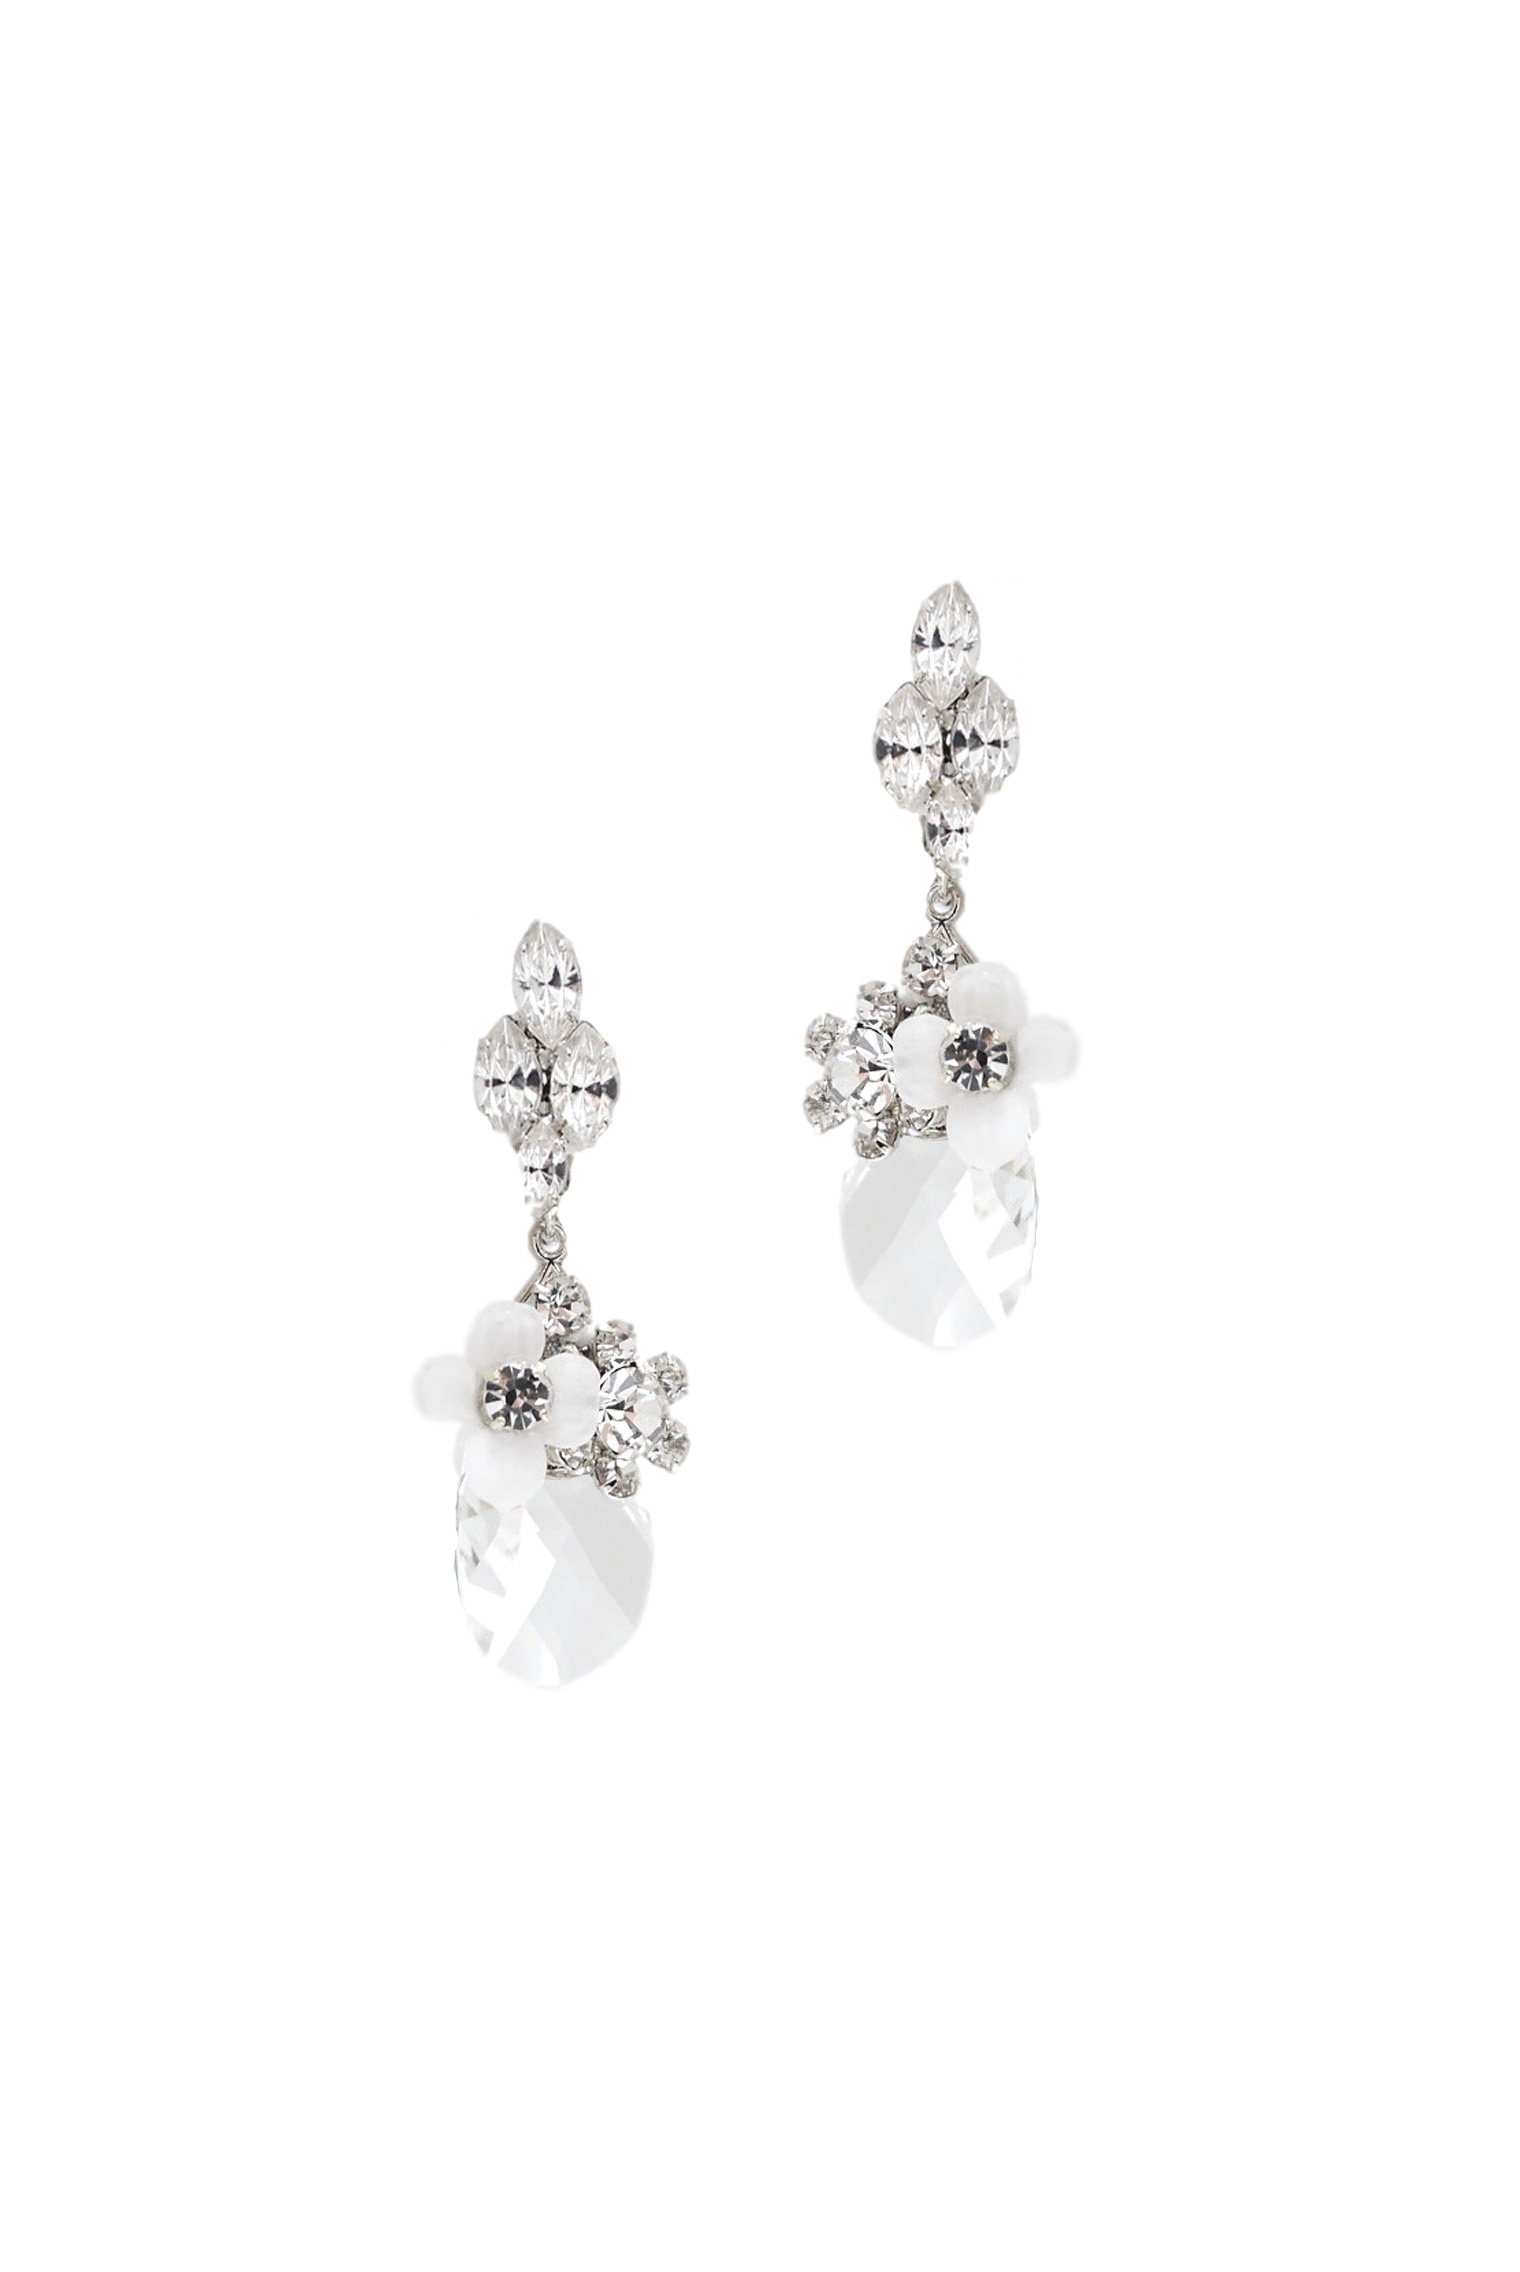 [RENTAL][JB Original Lina Earrings]by Ti Adoro Jewelry